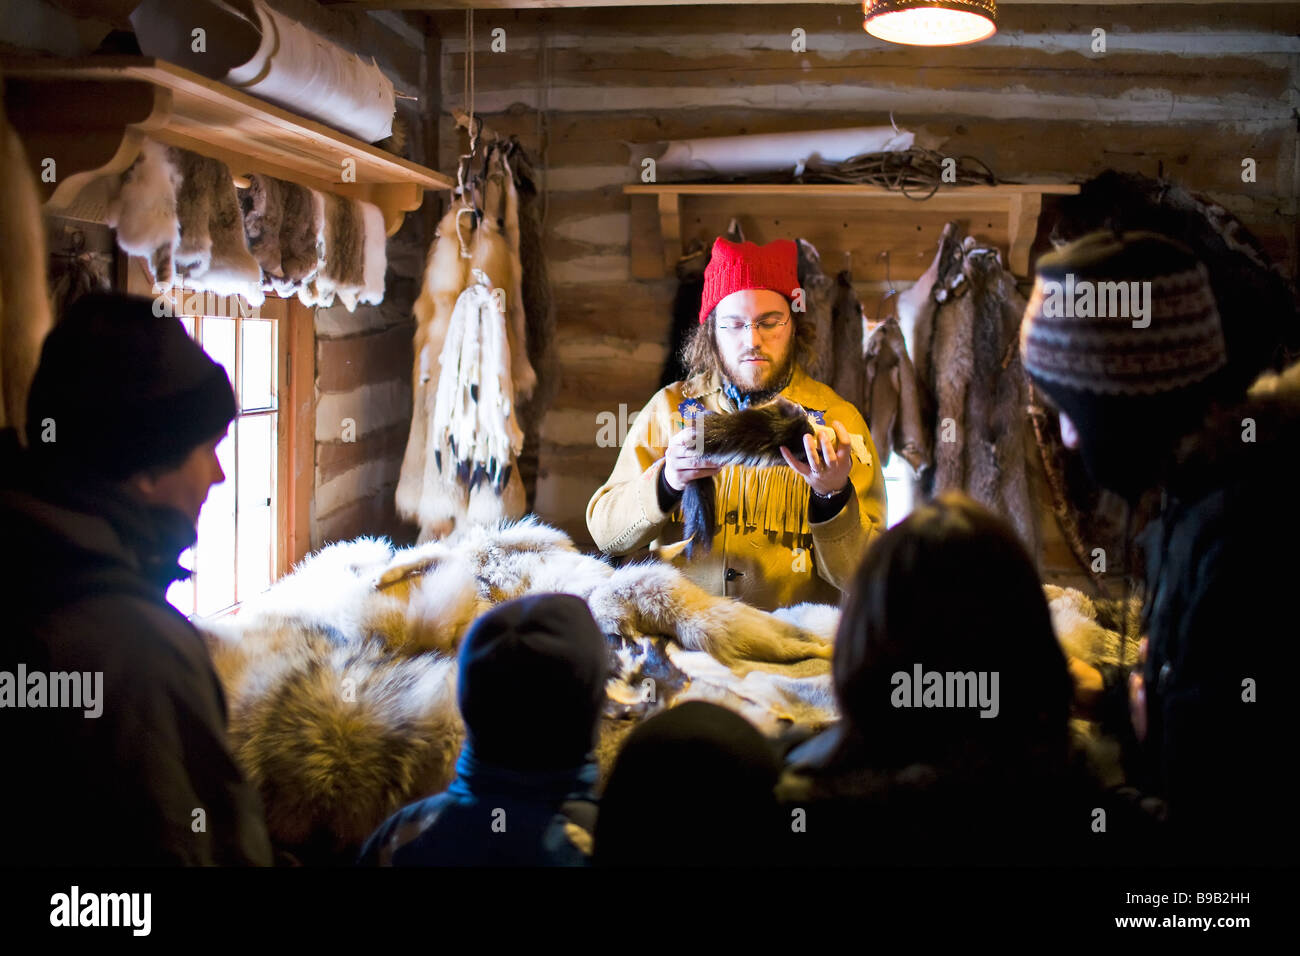 A French Canadian Fur trader at the Festival du Voyageur, St. Boniface, Winnipeg, Manitoba, Canada. - Stock Image